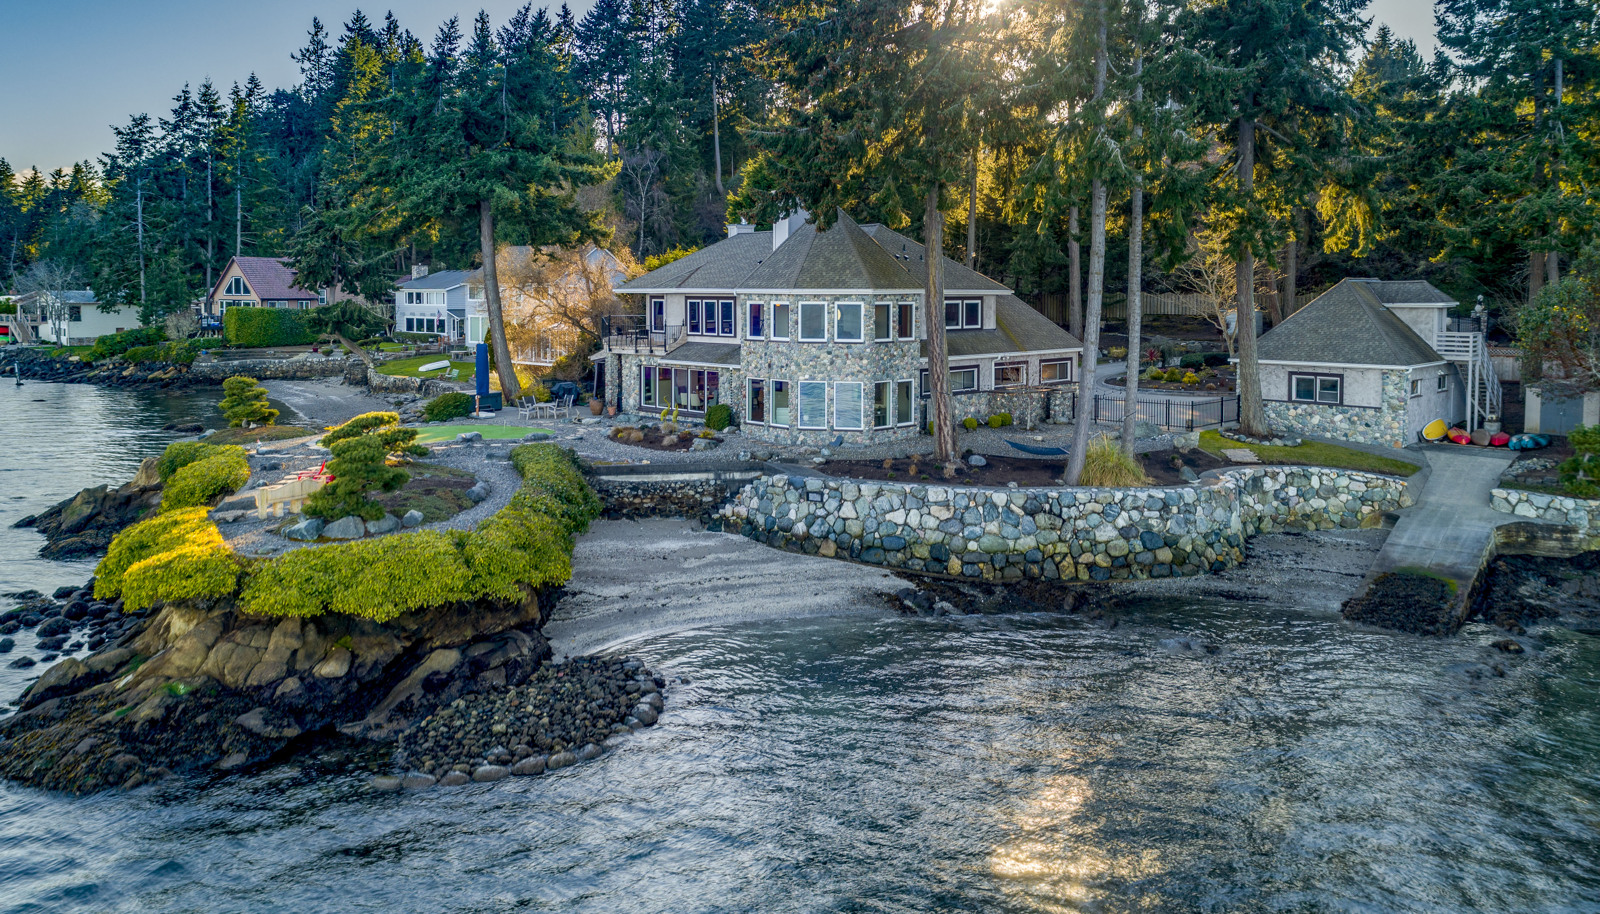 An idyllic waterfront lifestyle and setting with panoramic 240+ degree views, a sandy beach area, and a boat ramp!